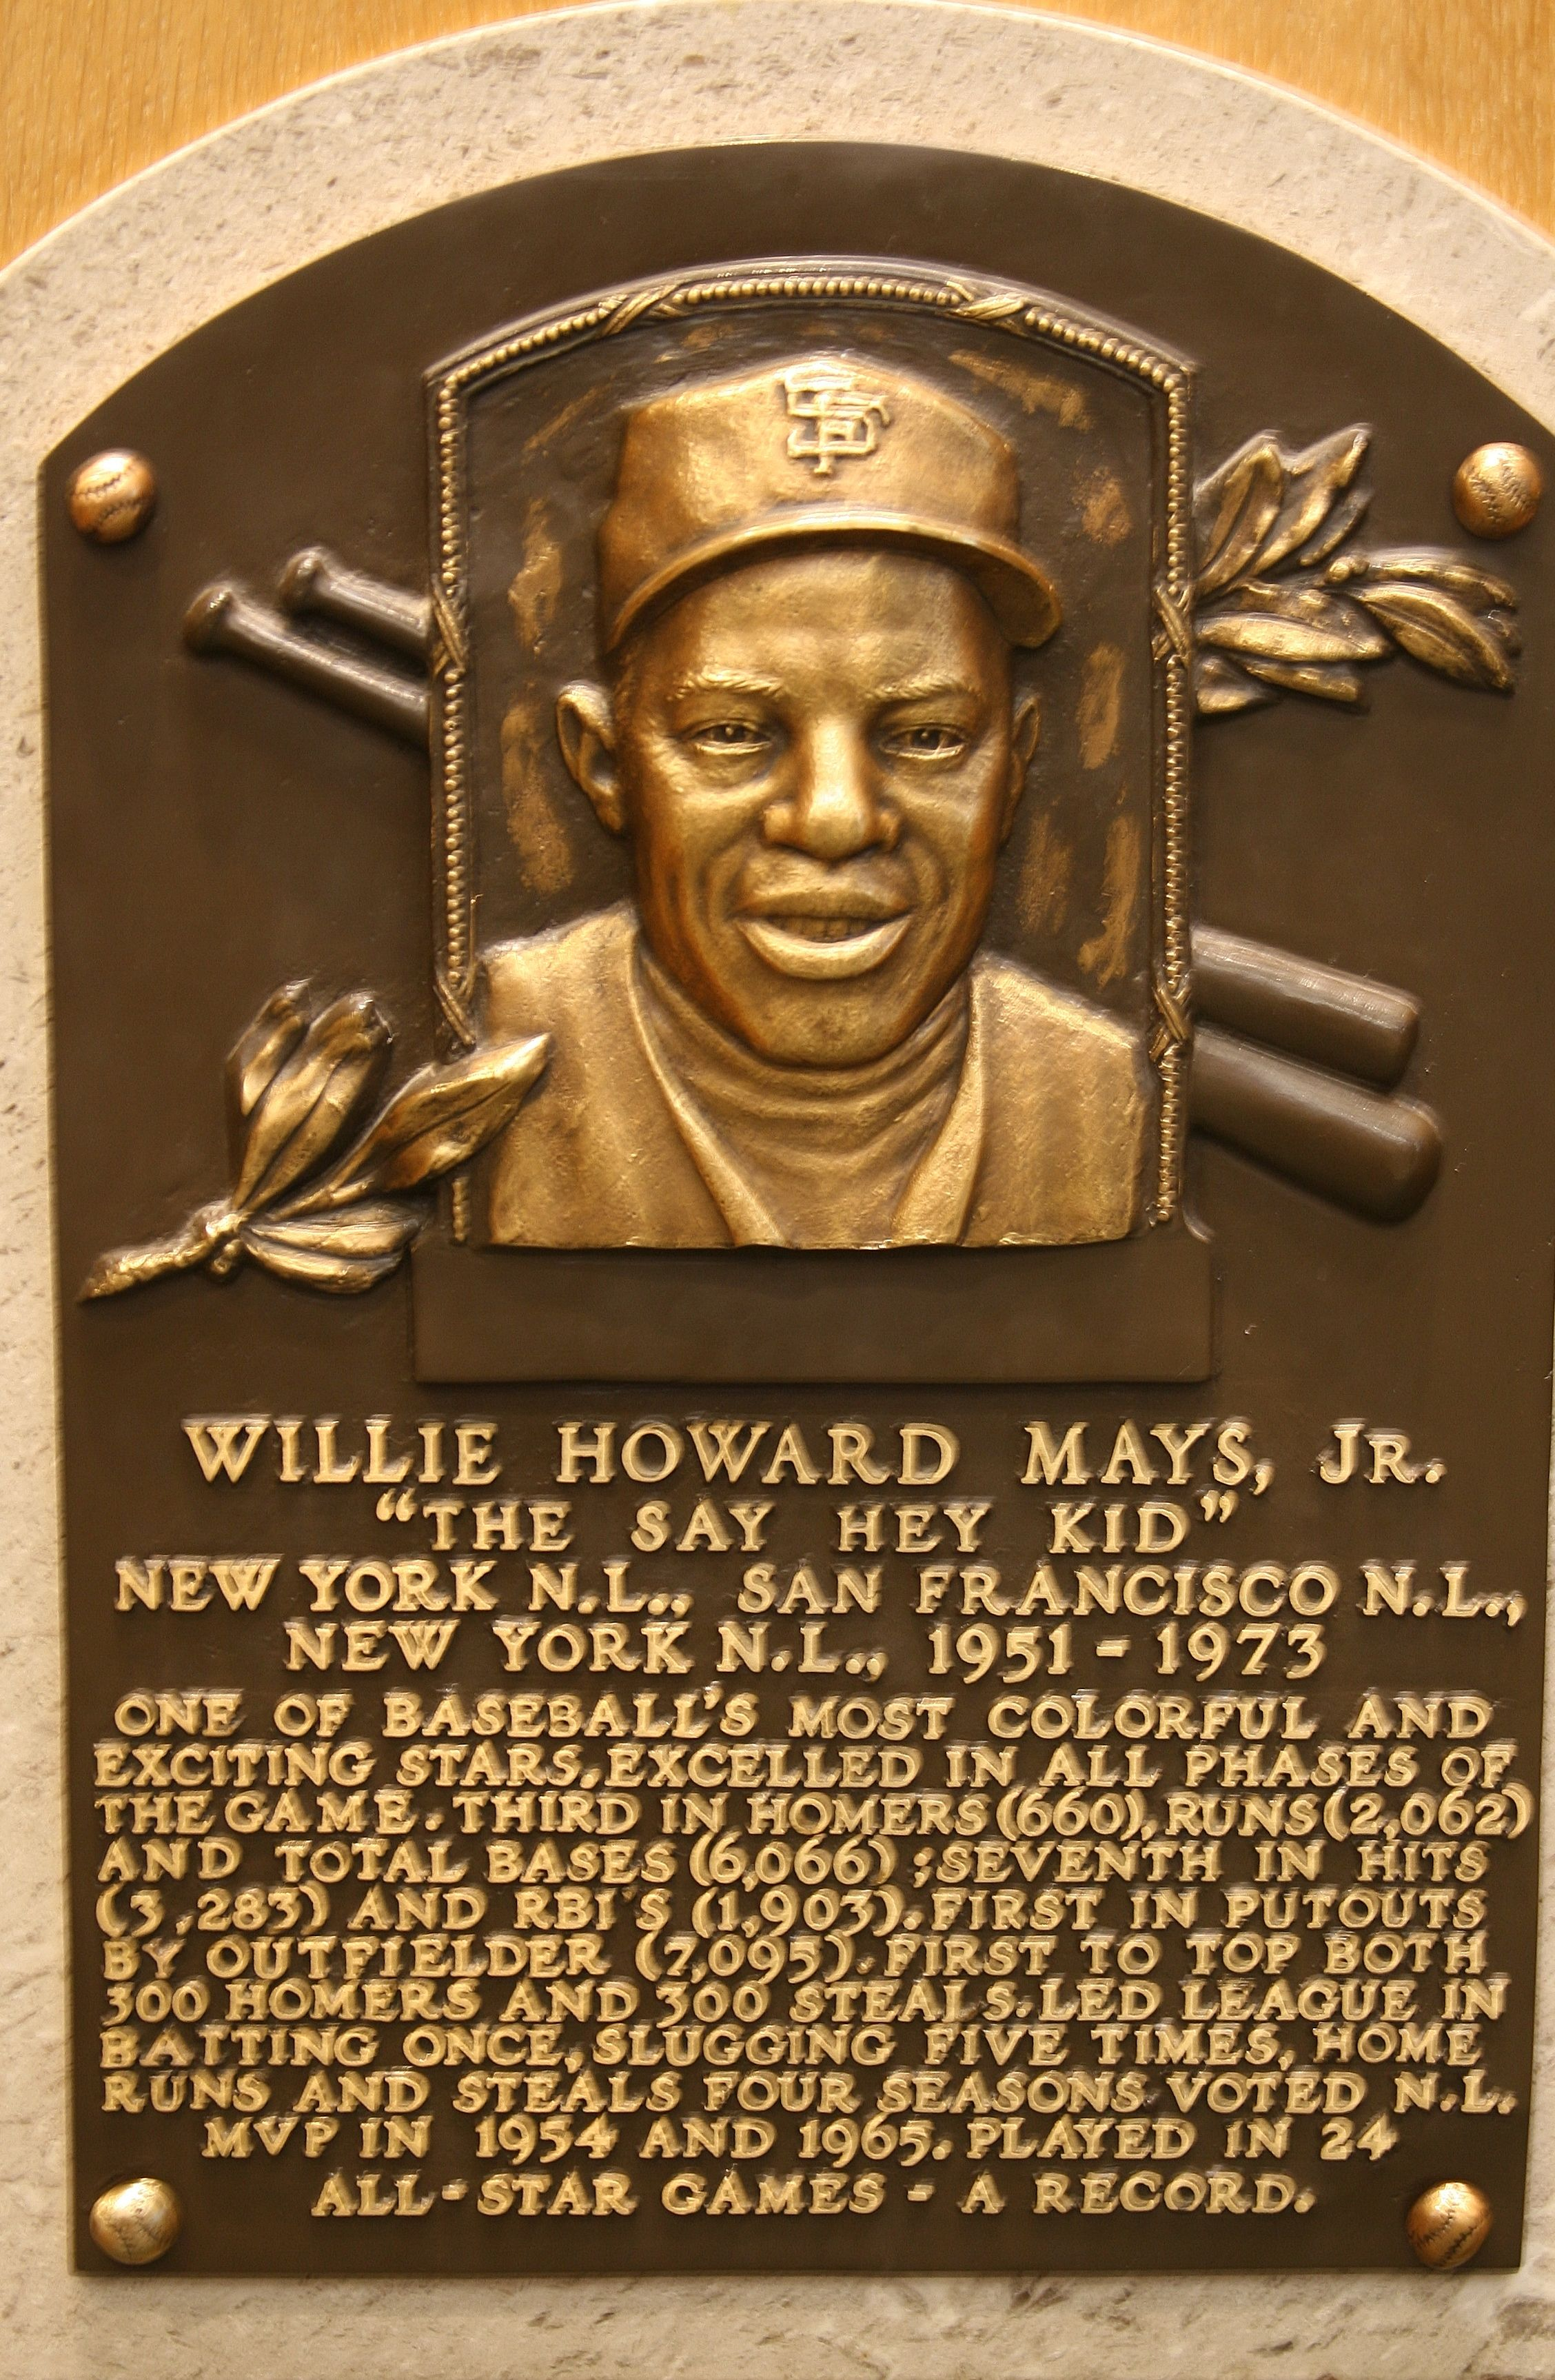 Willie Mays Baseball Hall Of Fame Plaque Chicago Cubs Opening Day Chicago Cubs Fans Chicago Cubs